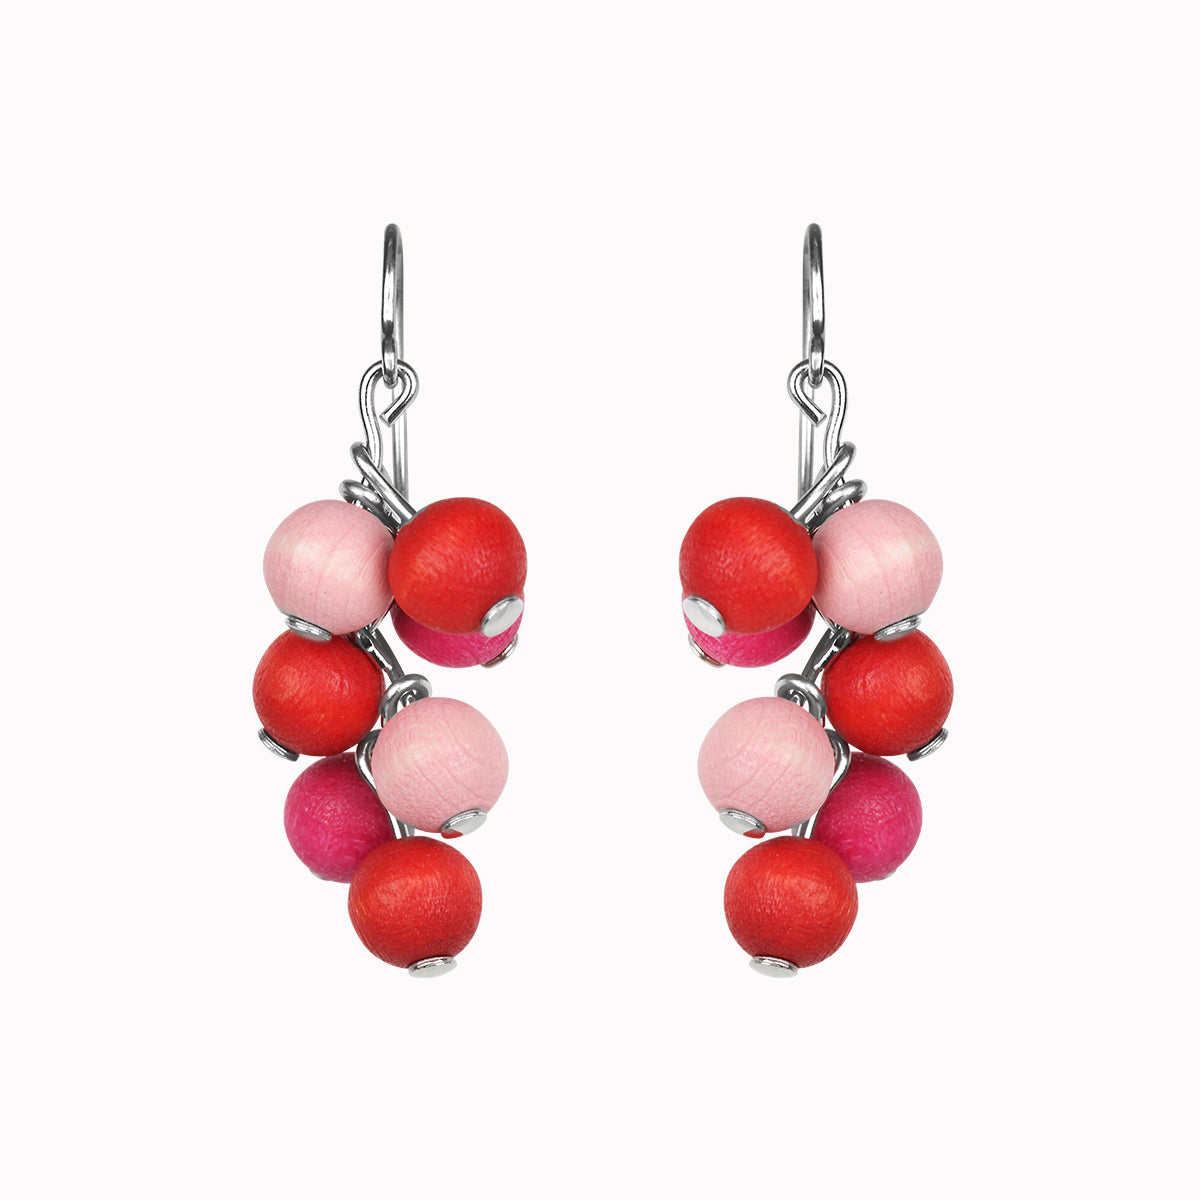 Herukka earrings